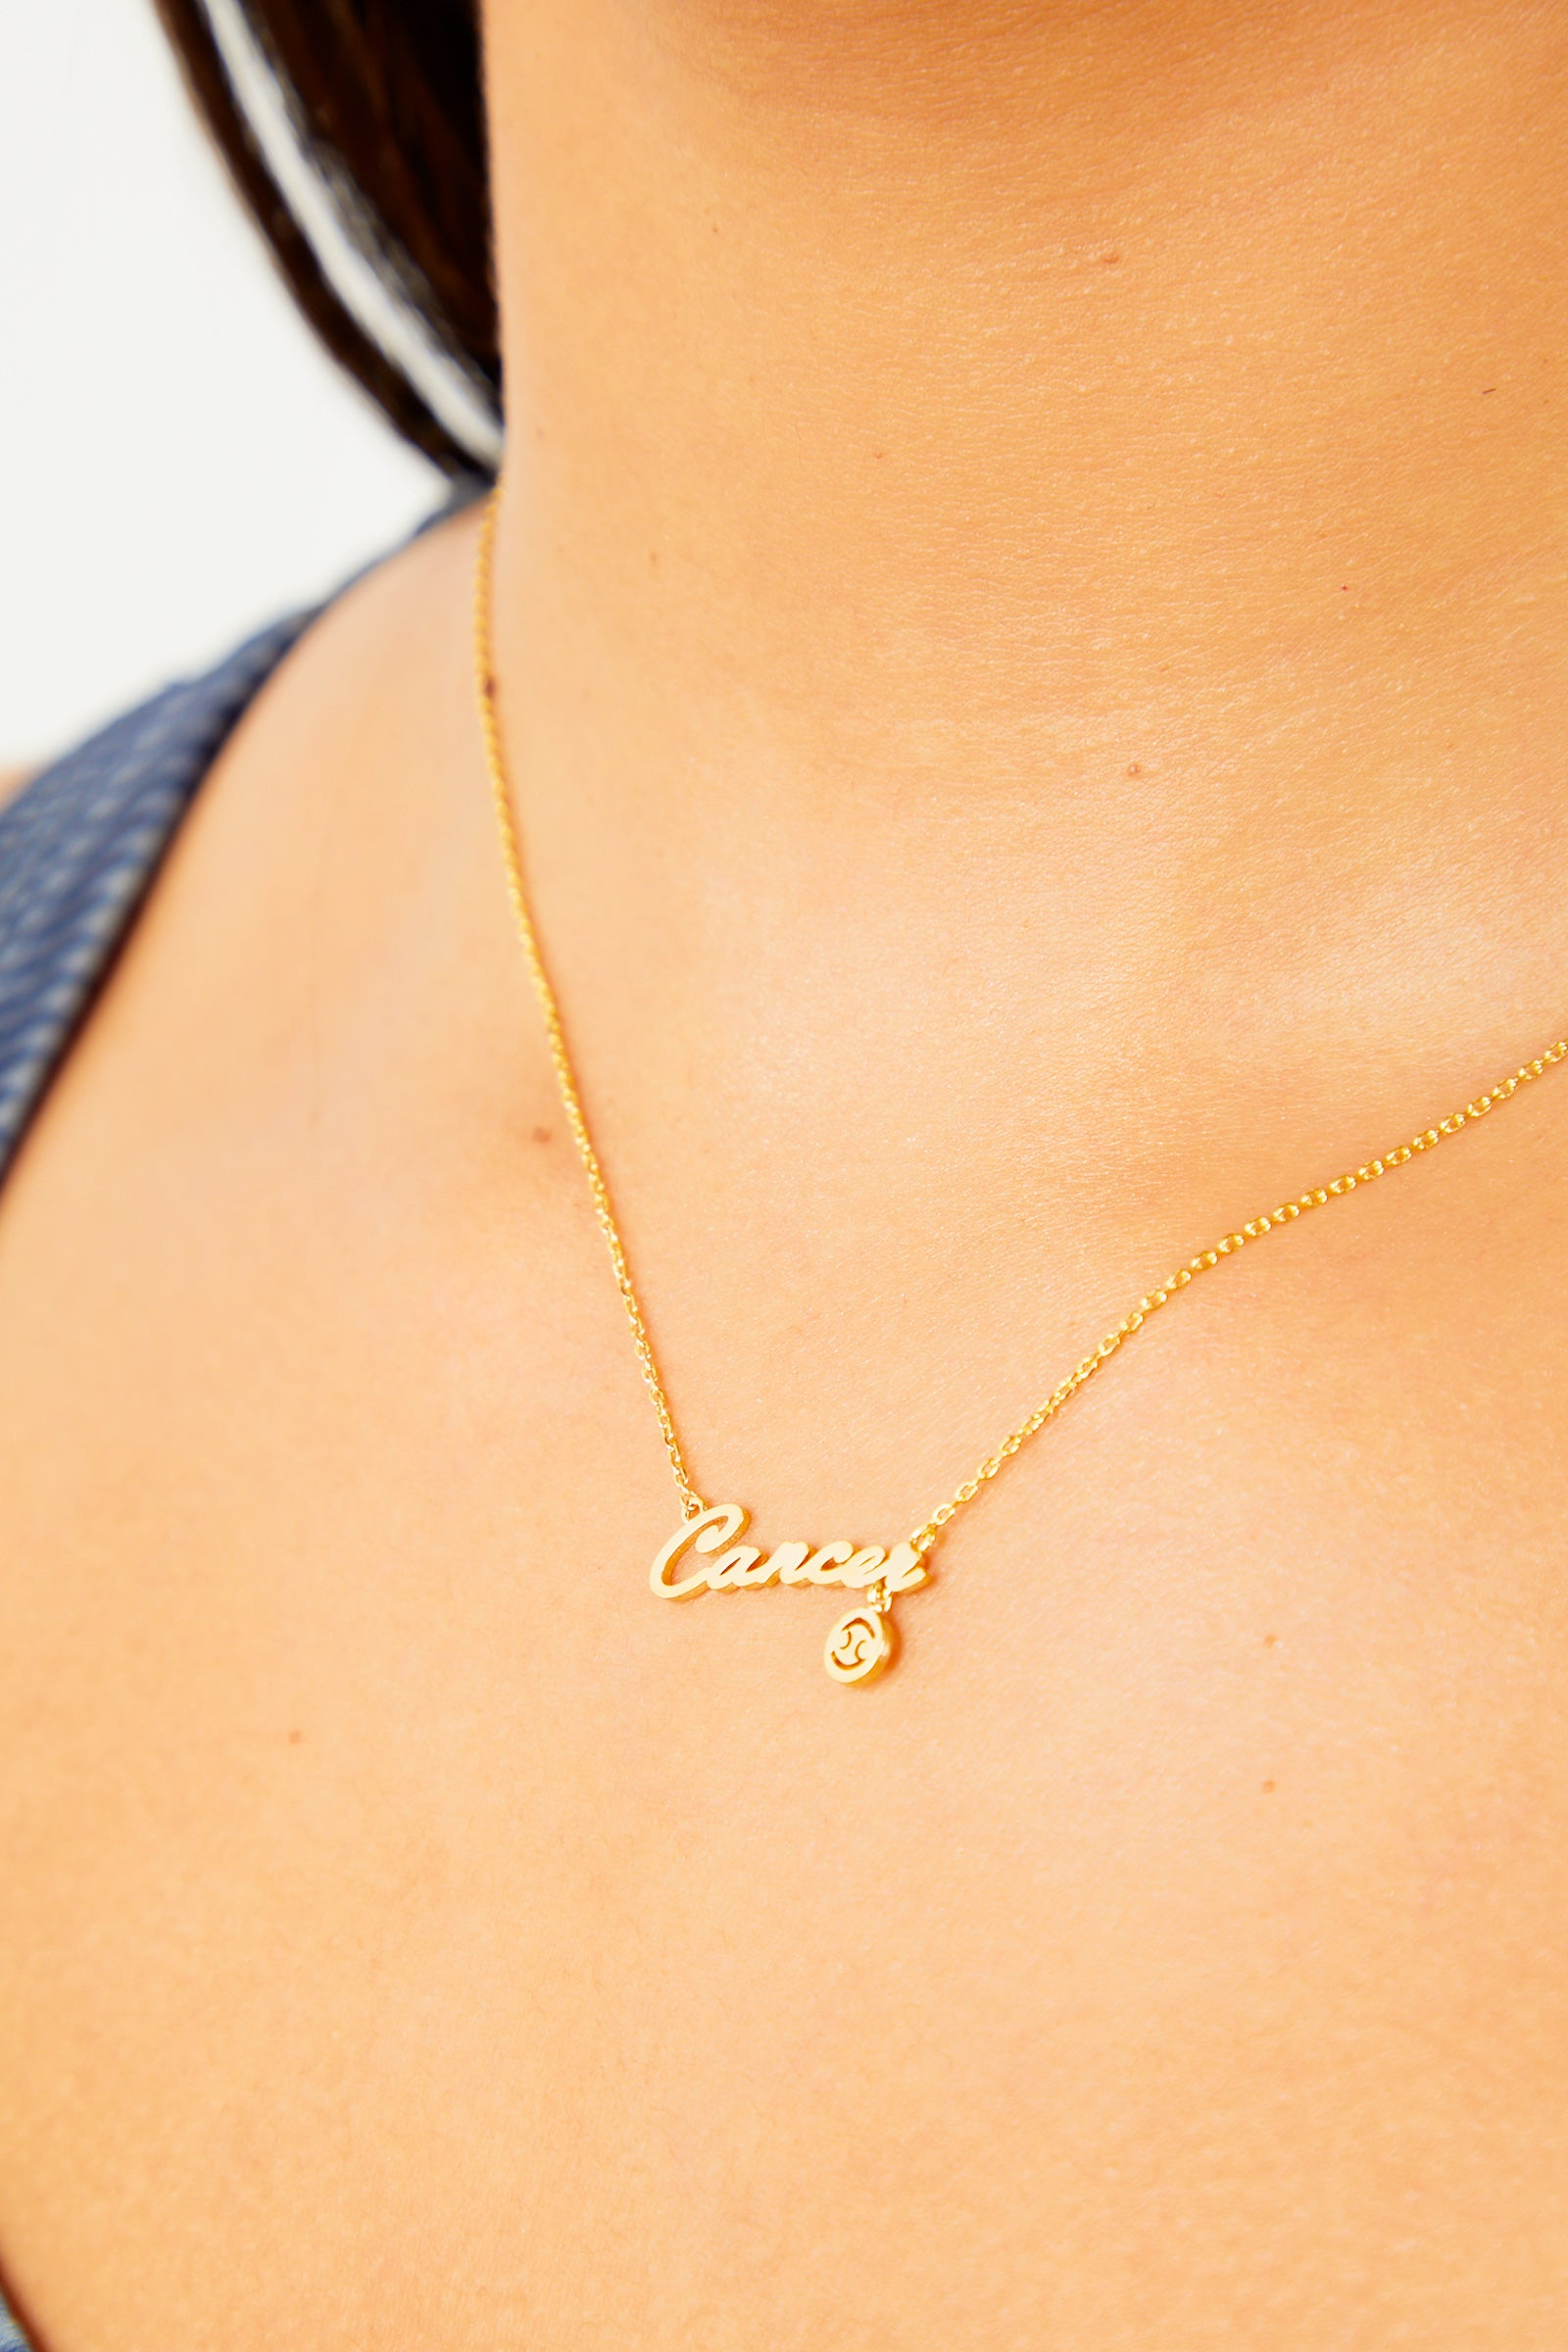 Cancer Nameplate Necklace - Gold